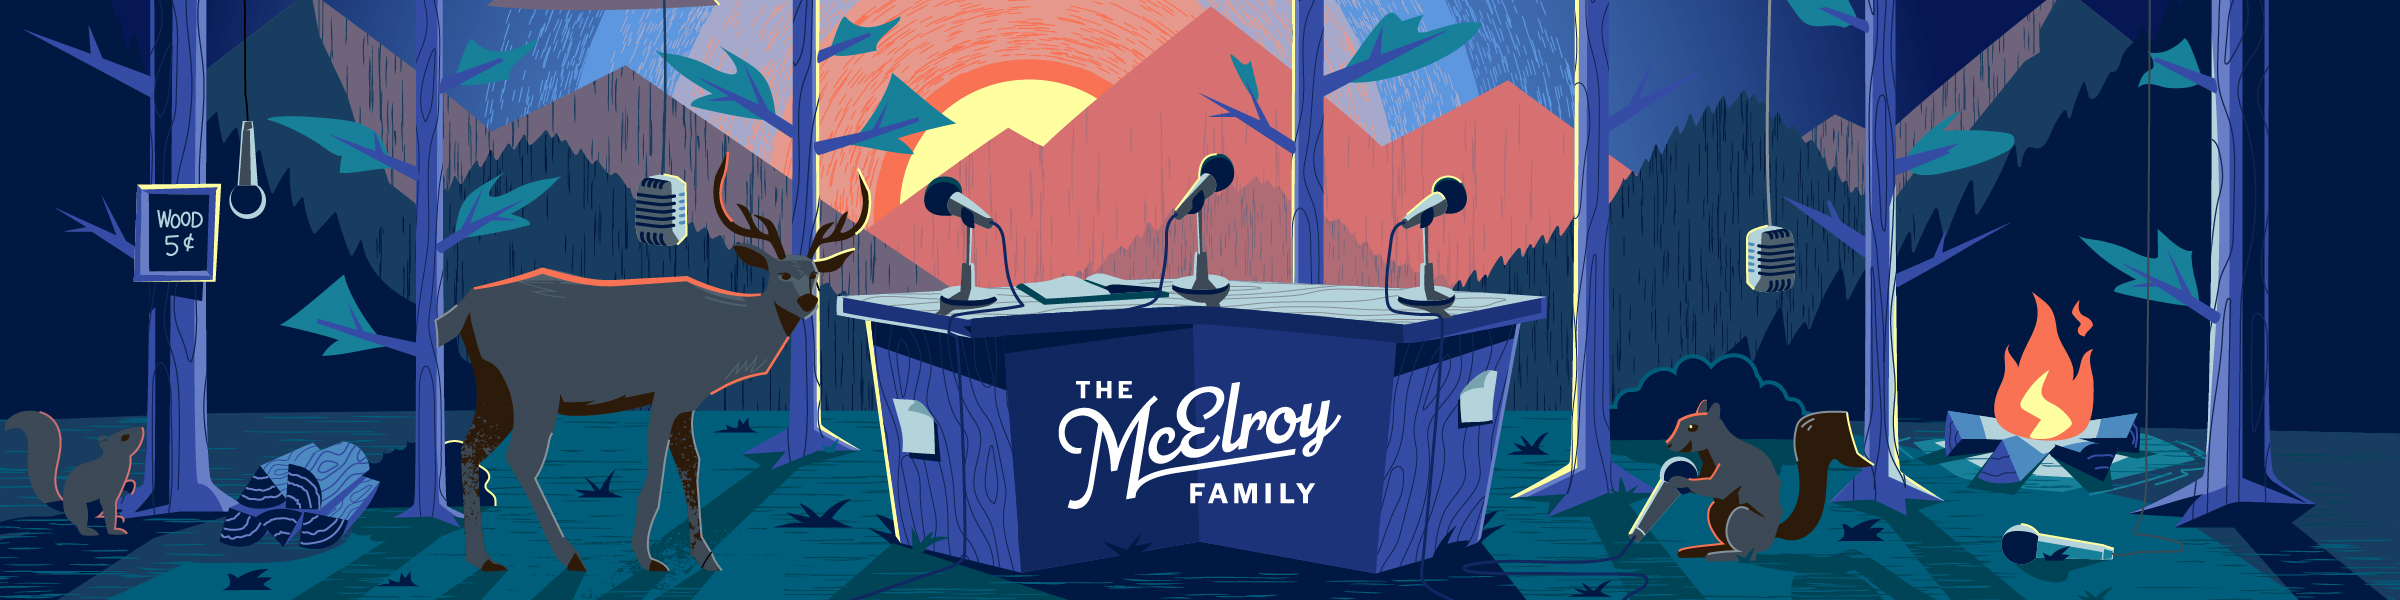 The McElroy Family